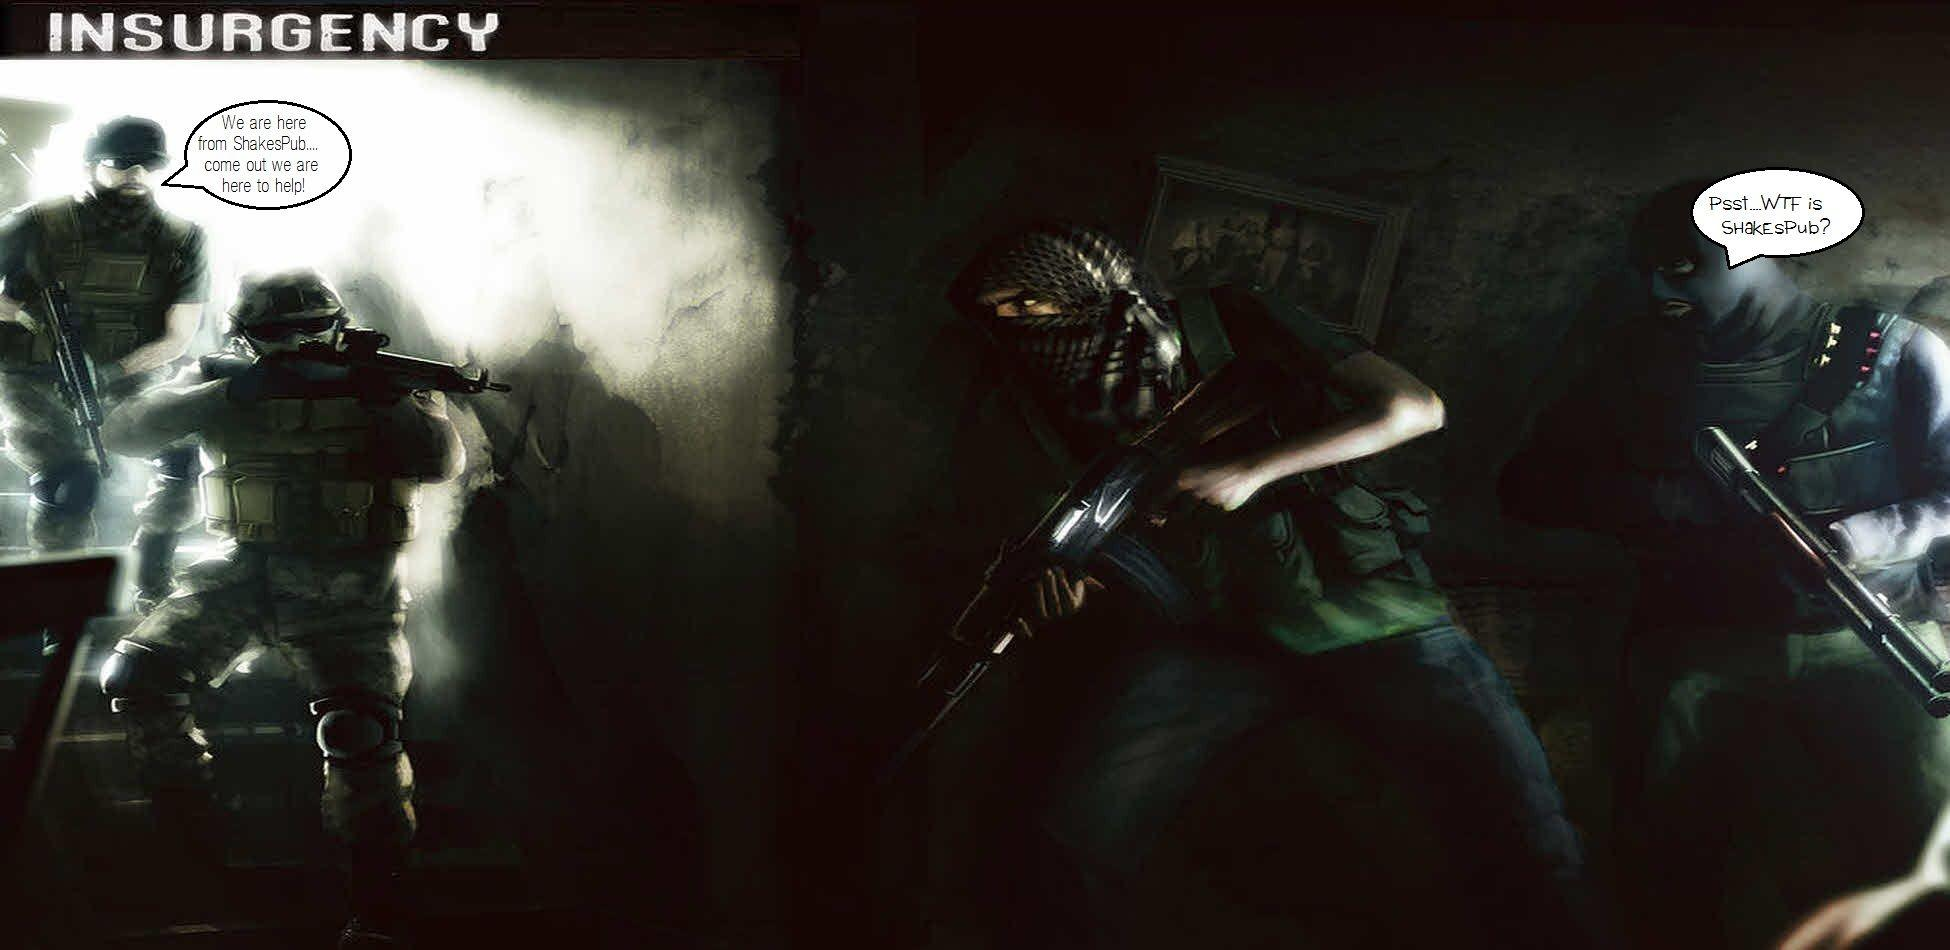 Insurgency Wallpapers Wallpaper Cave